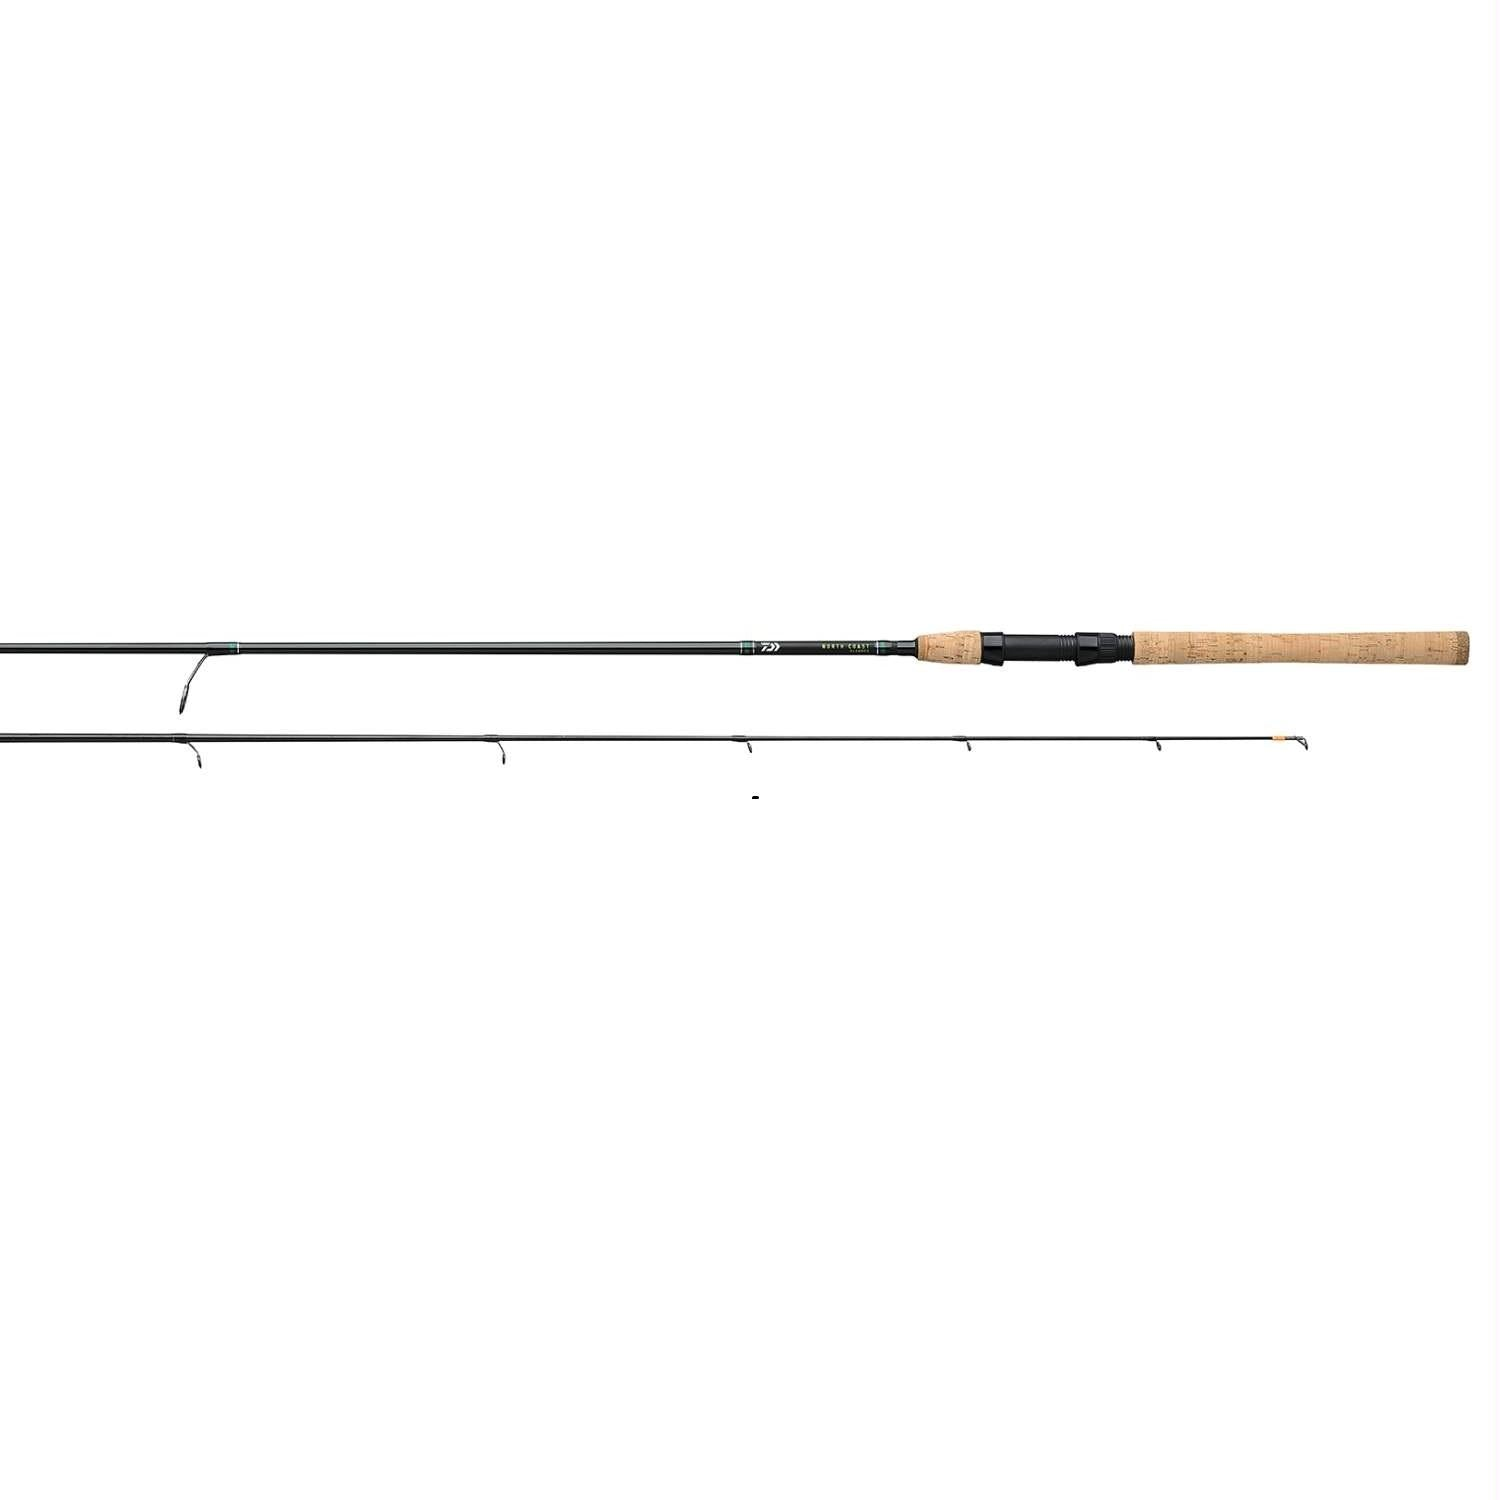 Daiwa North Coast SS Rod 2 Pieces Line Wt 8-17 NC962MHFS - Survival Camping Pro